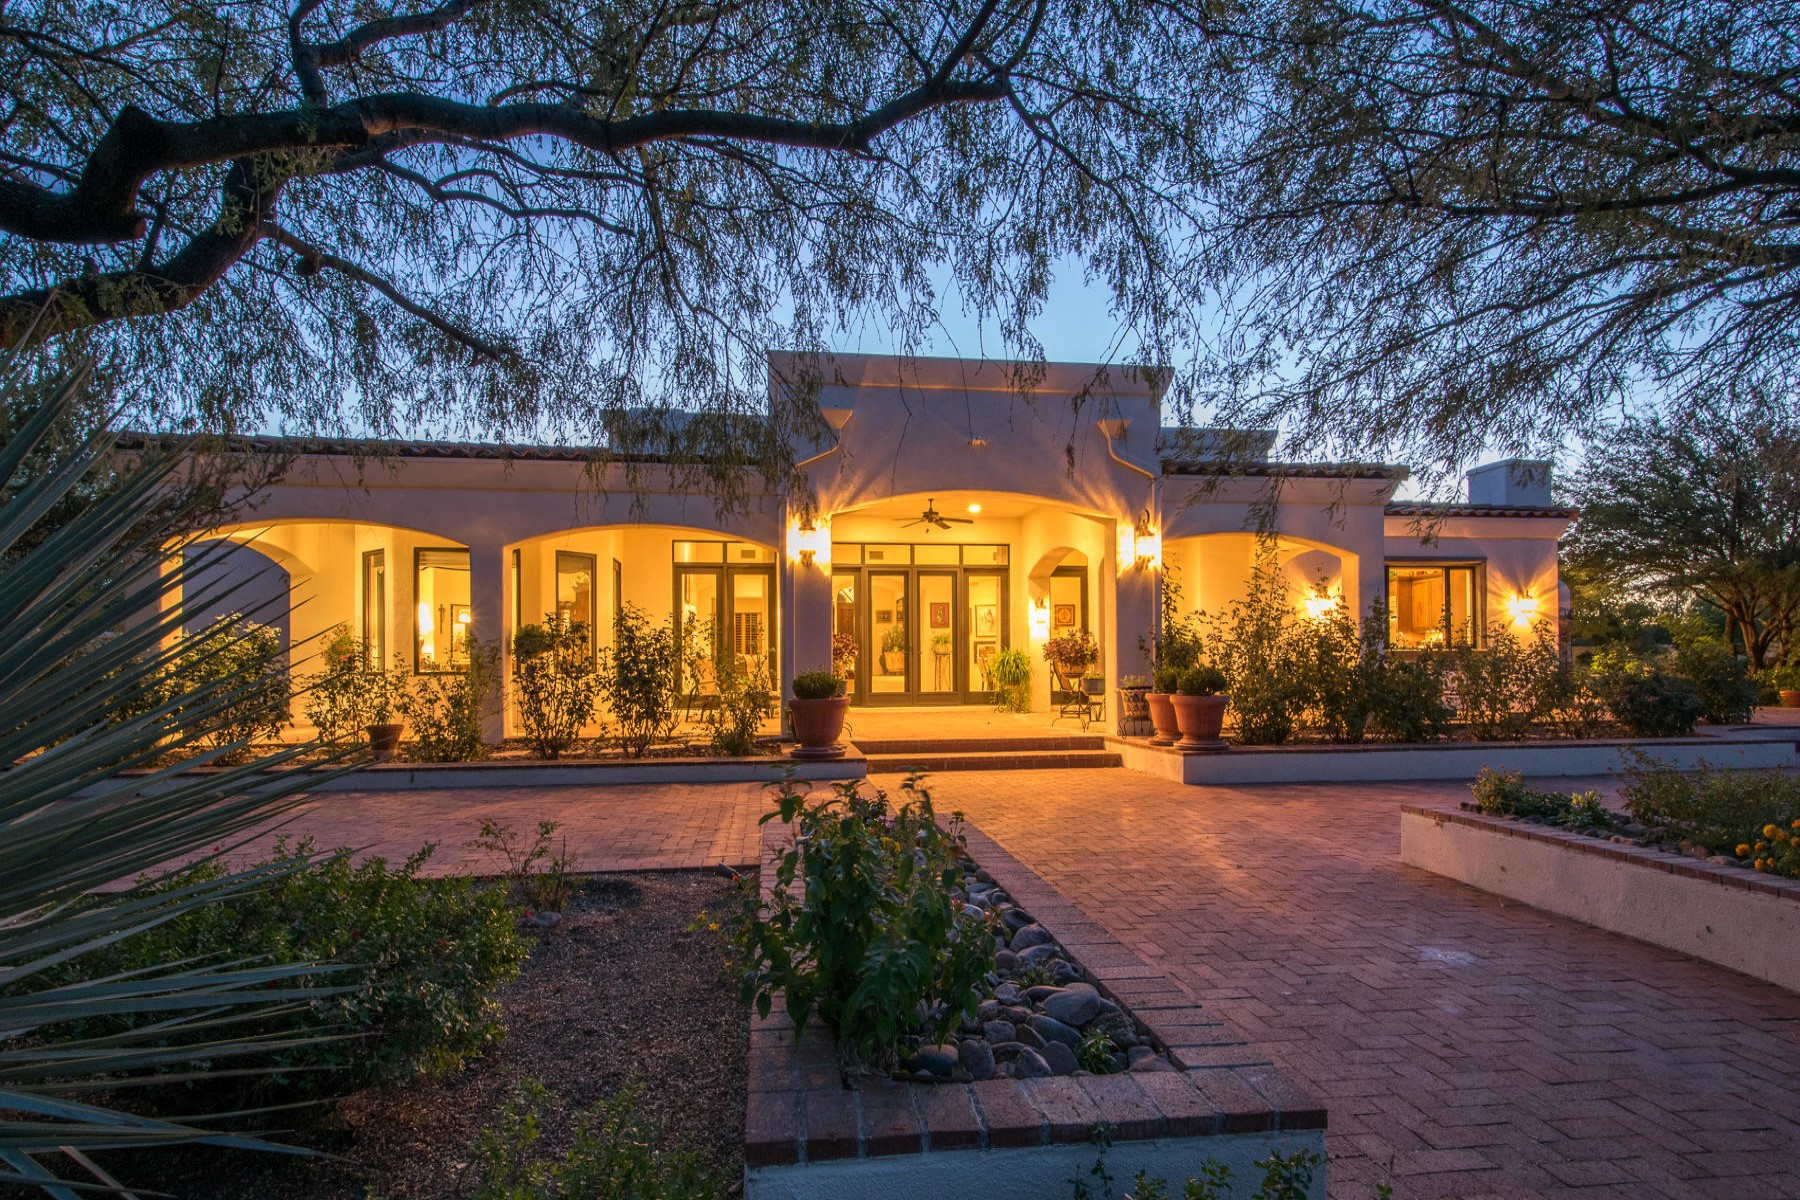 Maison unifamiliale pour l Vente à Stunning Custom Built Home at the north end of Tubac Valley 16 Calle Diaz Tubac, Arizona, 85646 États-Unis